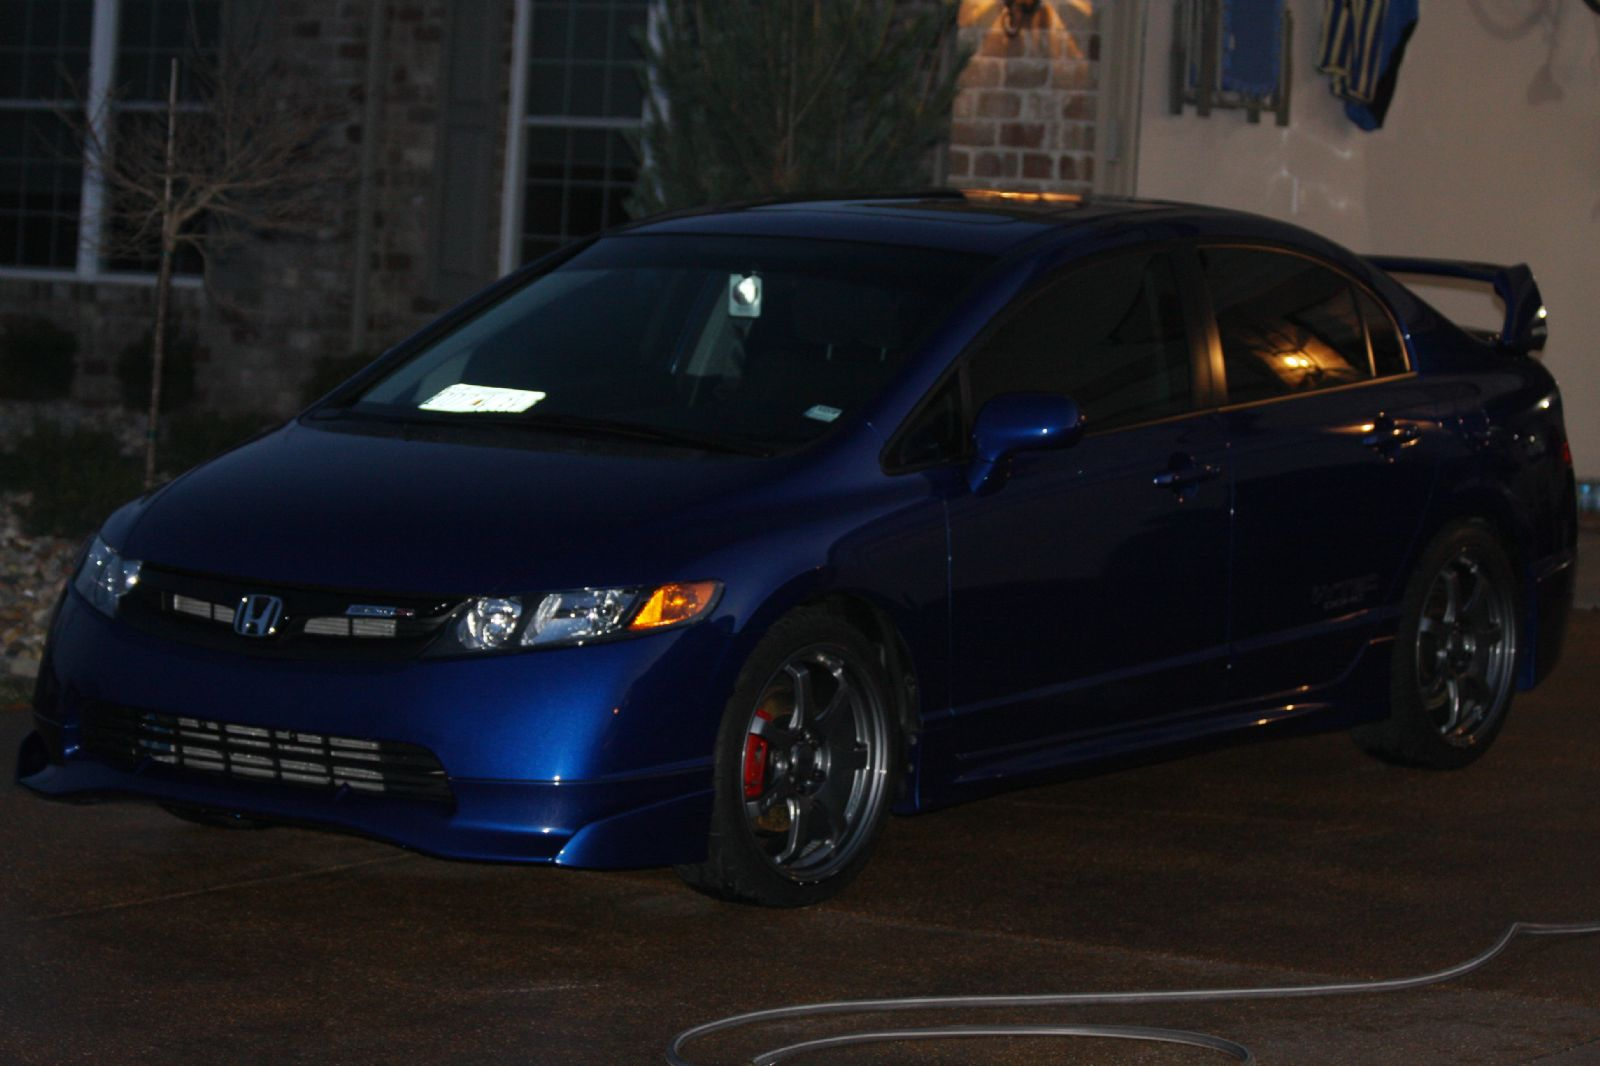 2008 honda civic mugen si for sale wentzville missouri. Black Bedroom Furniture Sets. Home Design Ideas